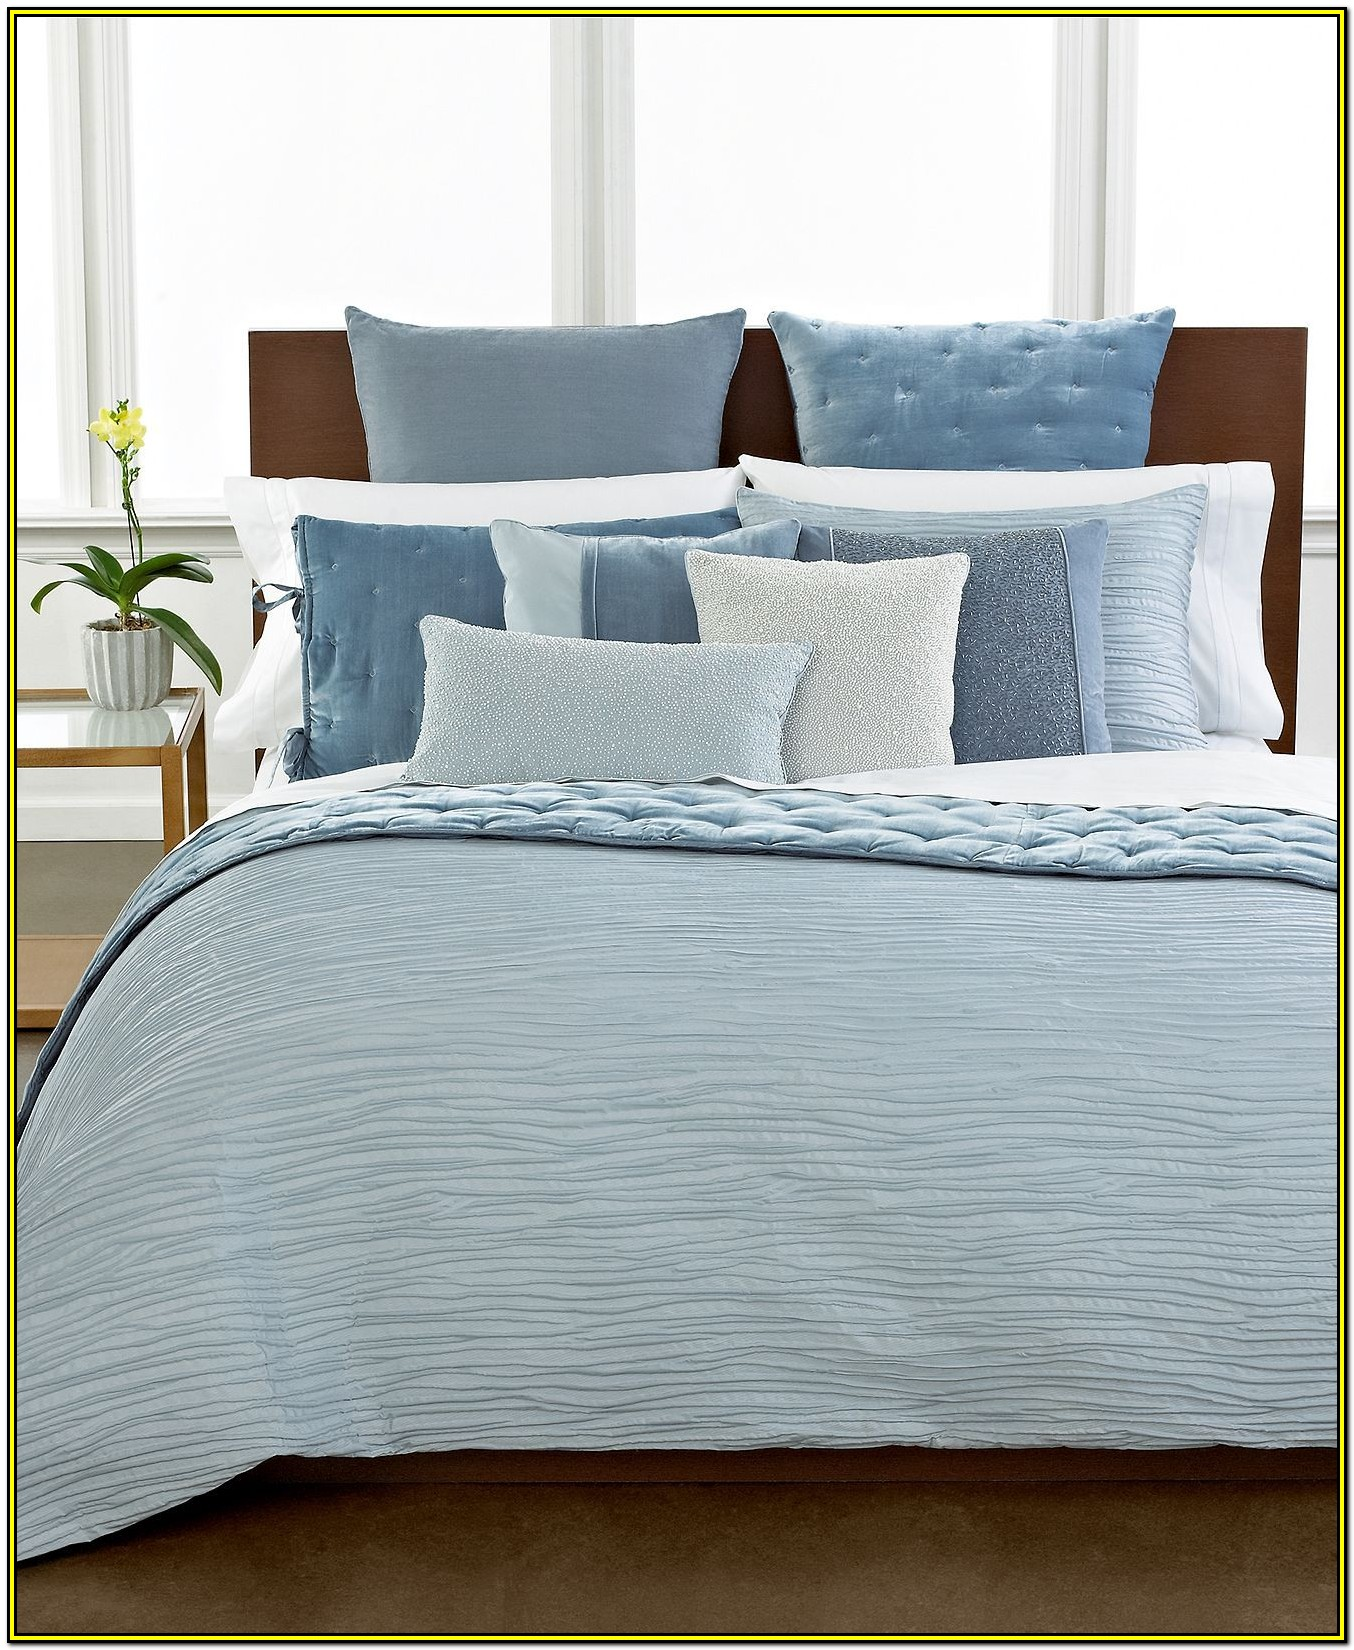 Macy's Hotel Collection Bedding Sets